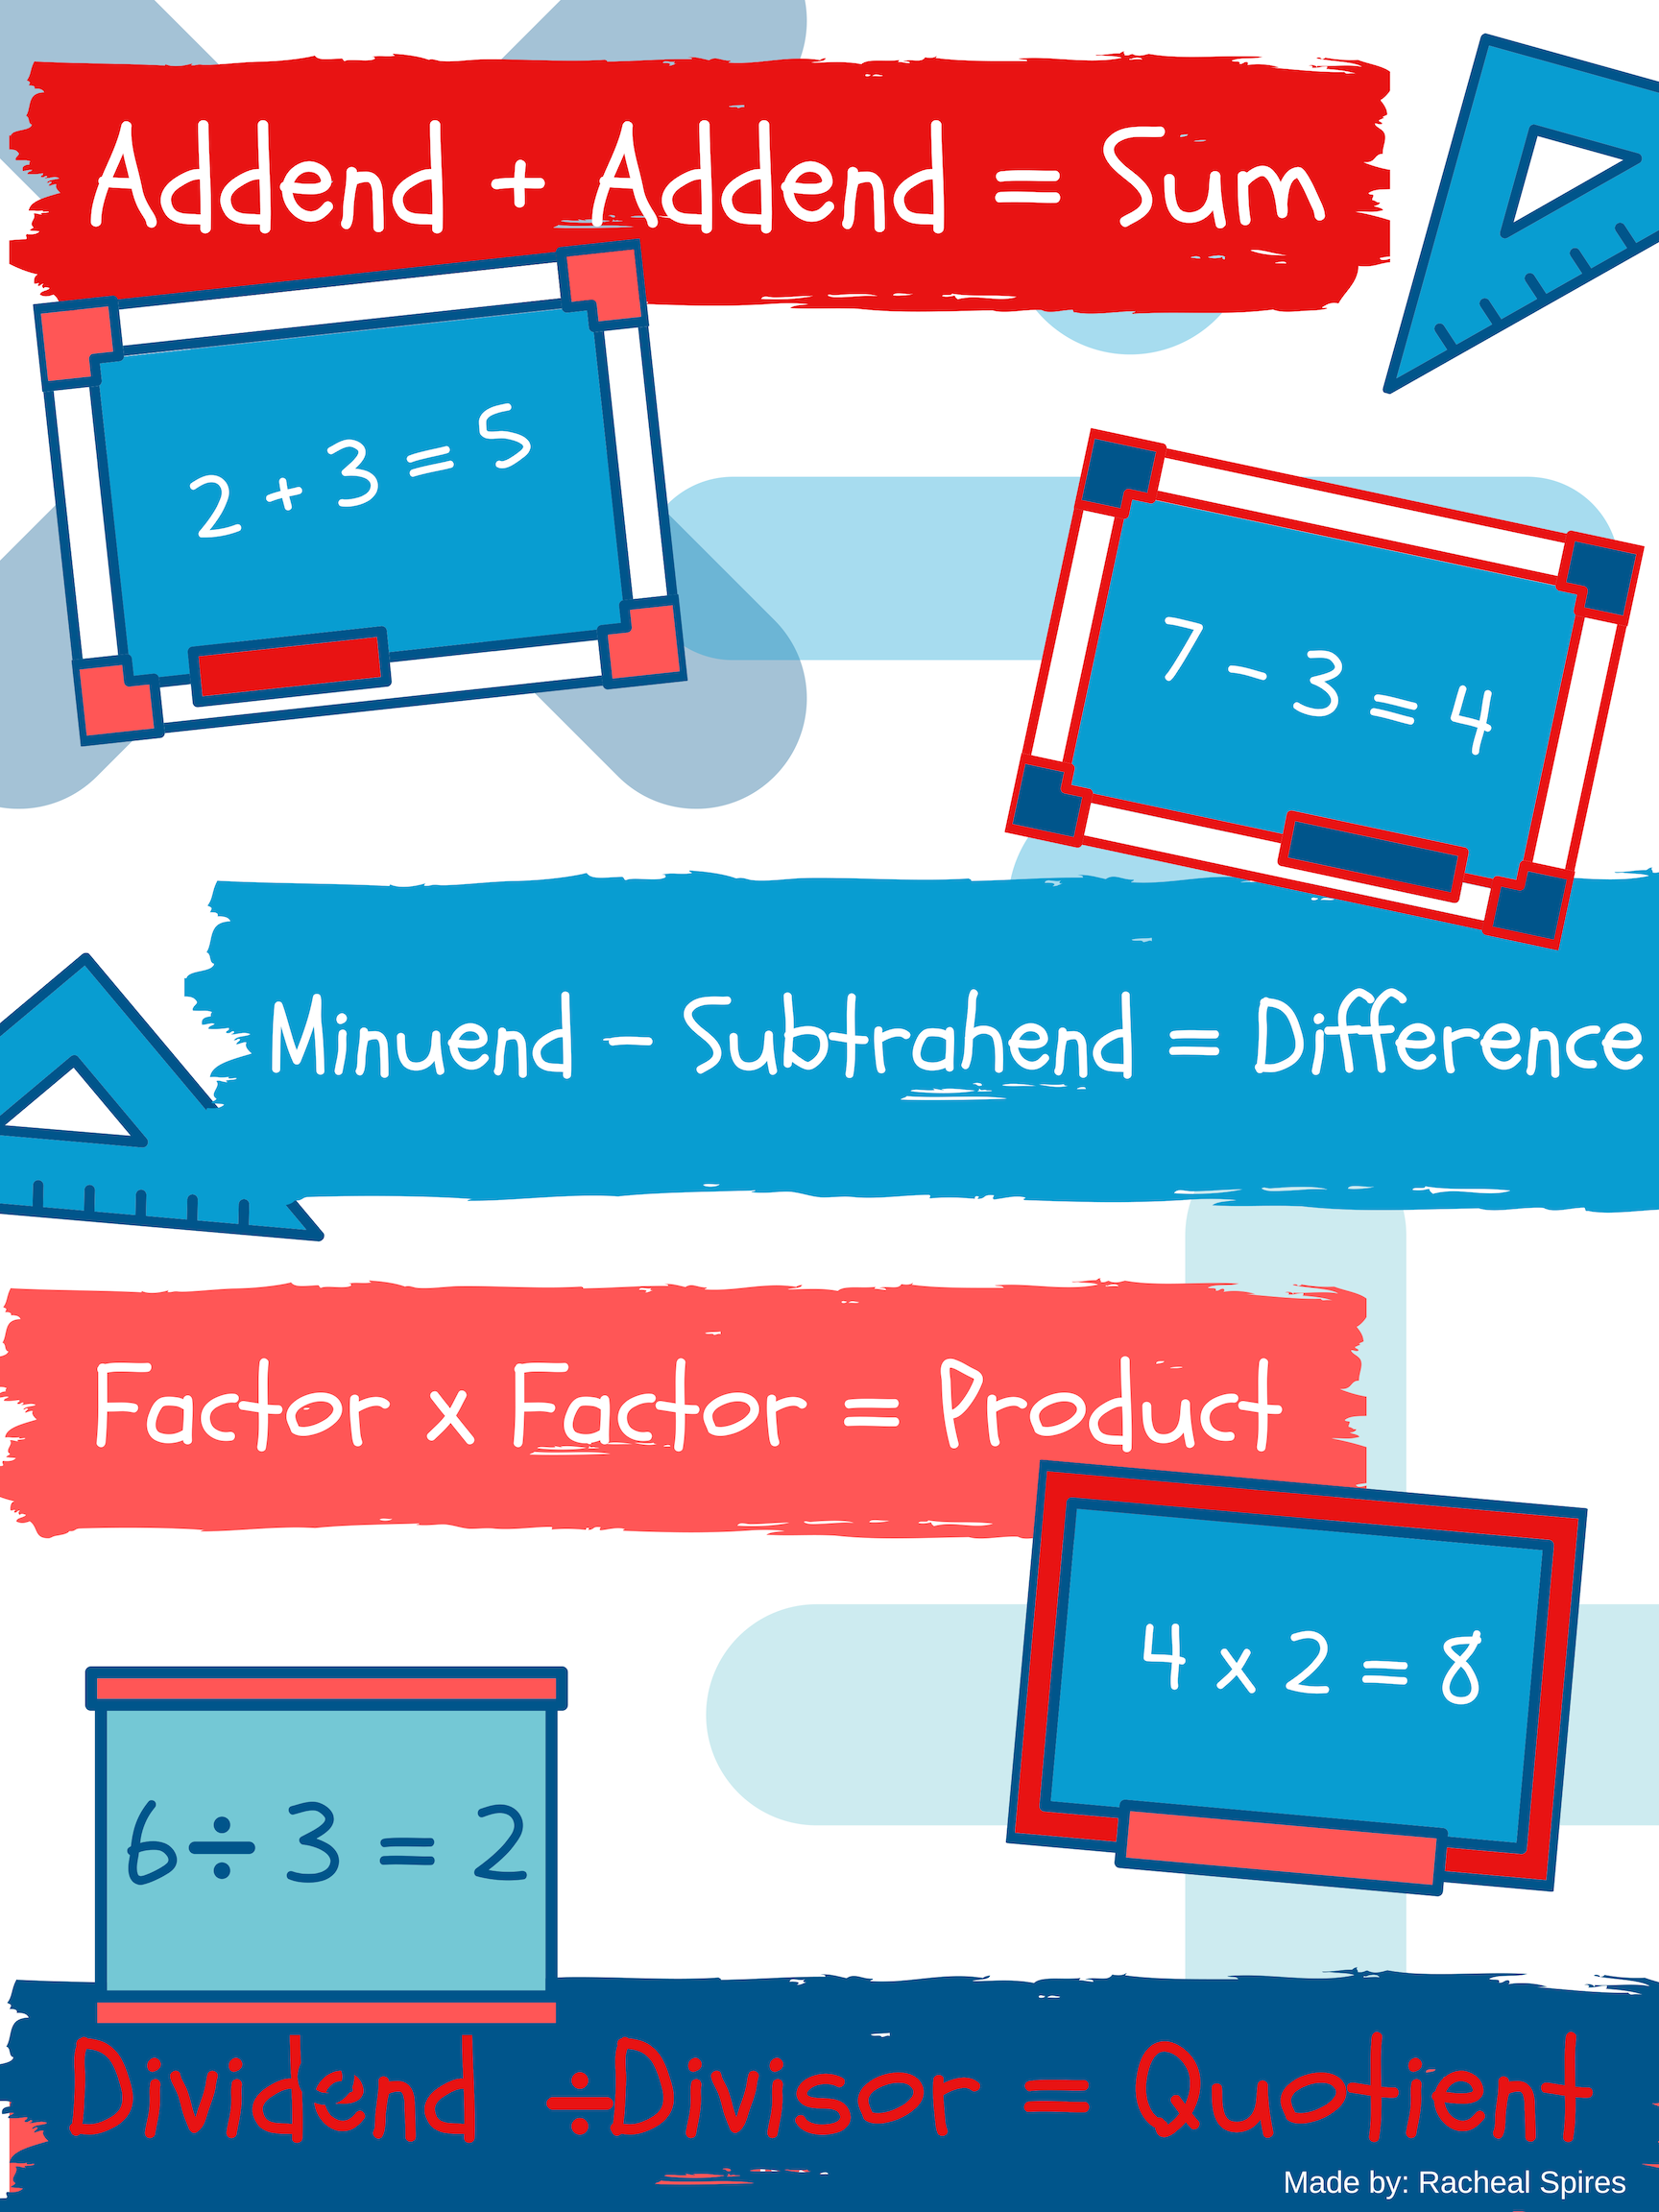 Addend Sum Minuend Subtrahend Difference Factor Product